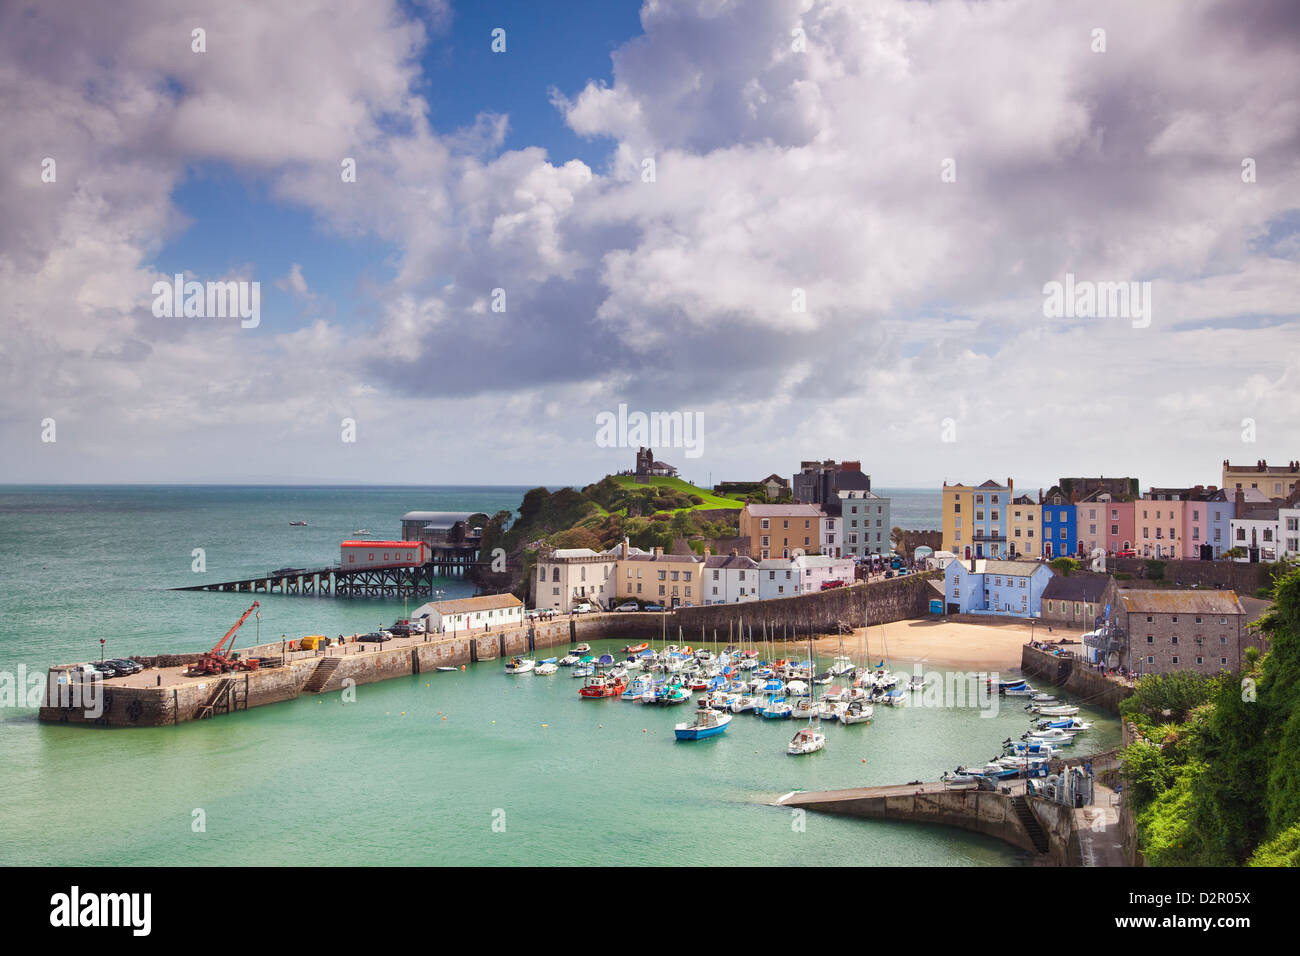 Tenby Harbour, Pembrokeshire, West Wales, Wales, United Kingdom, Europe - Stock Image